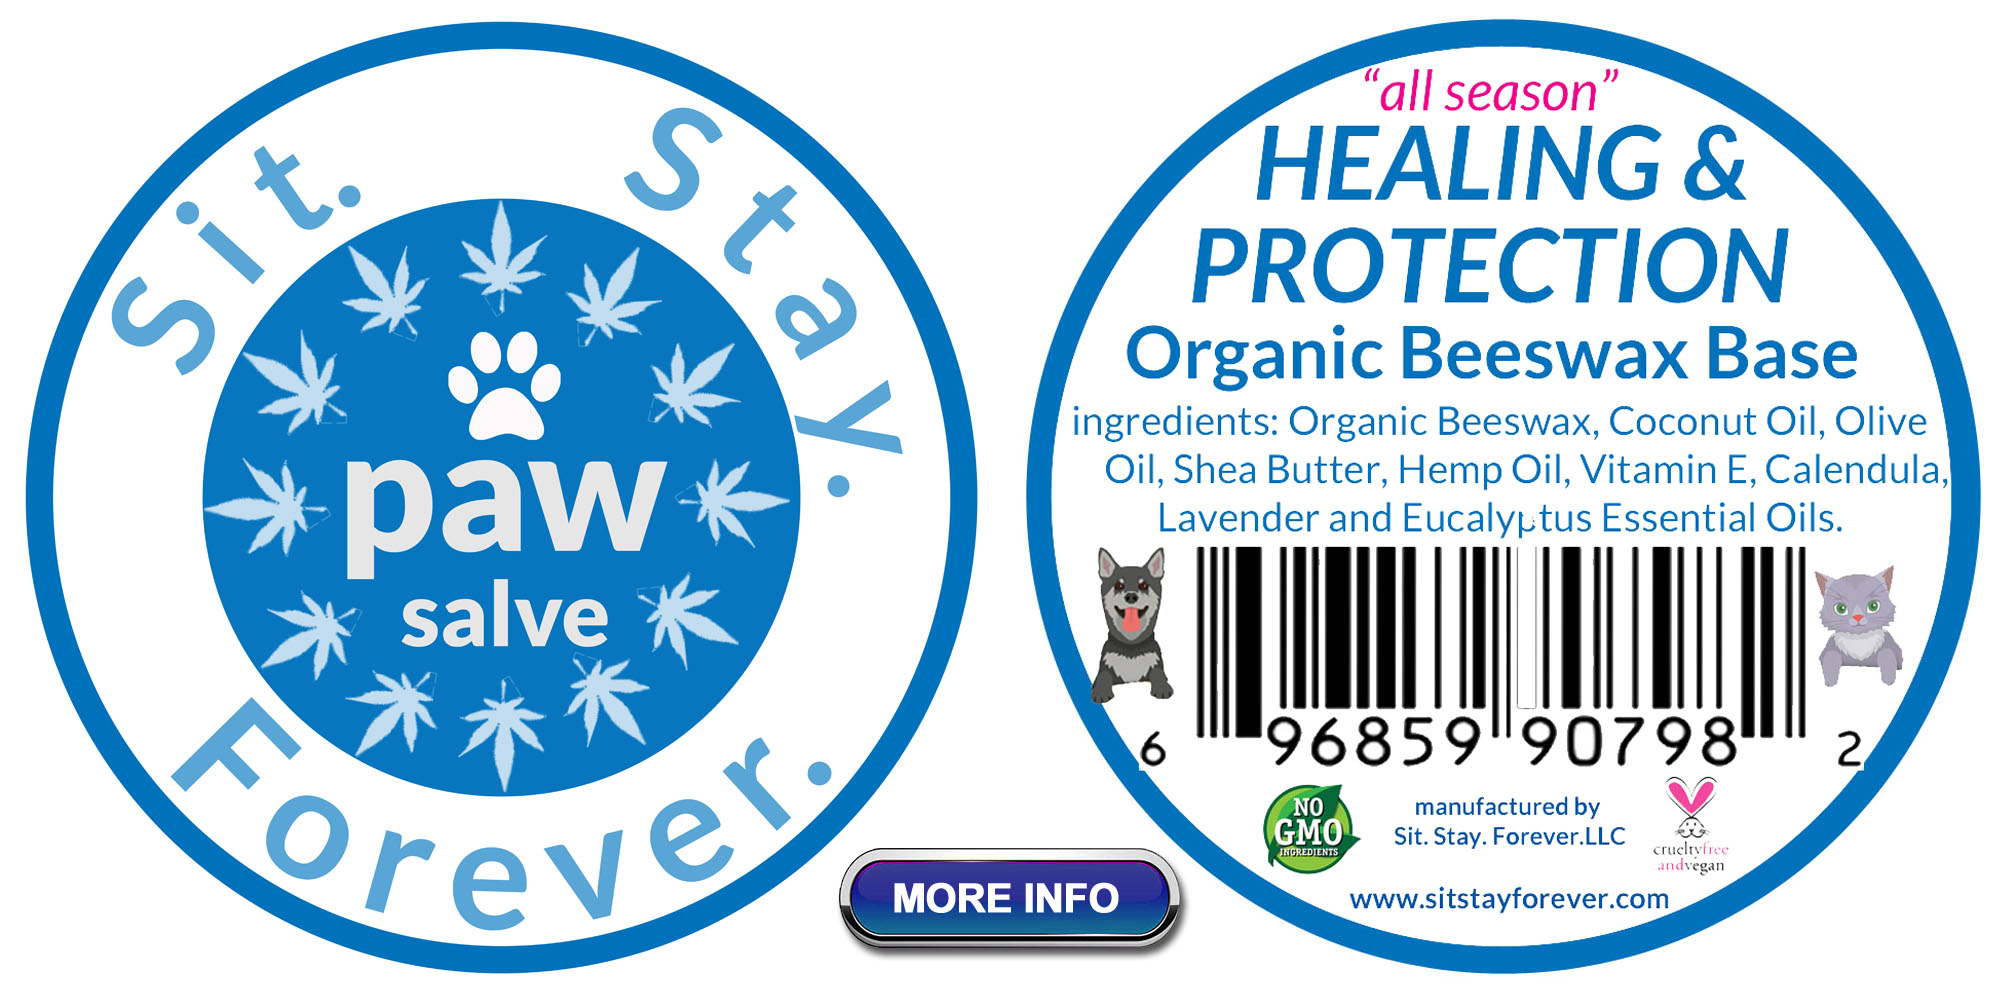 new-packaging-logo-front-and-back-with-hemp-more-info.jpg